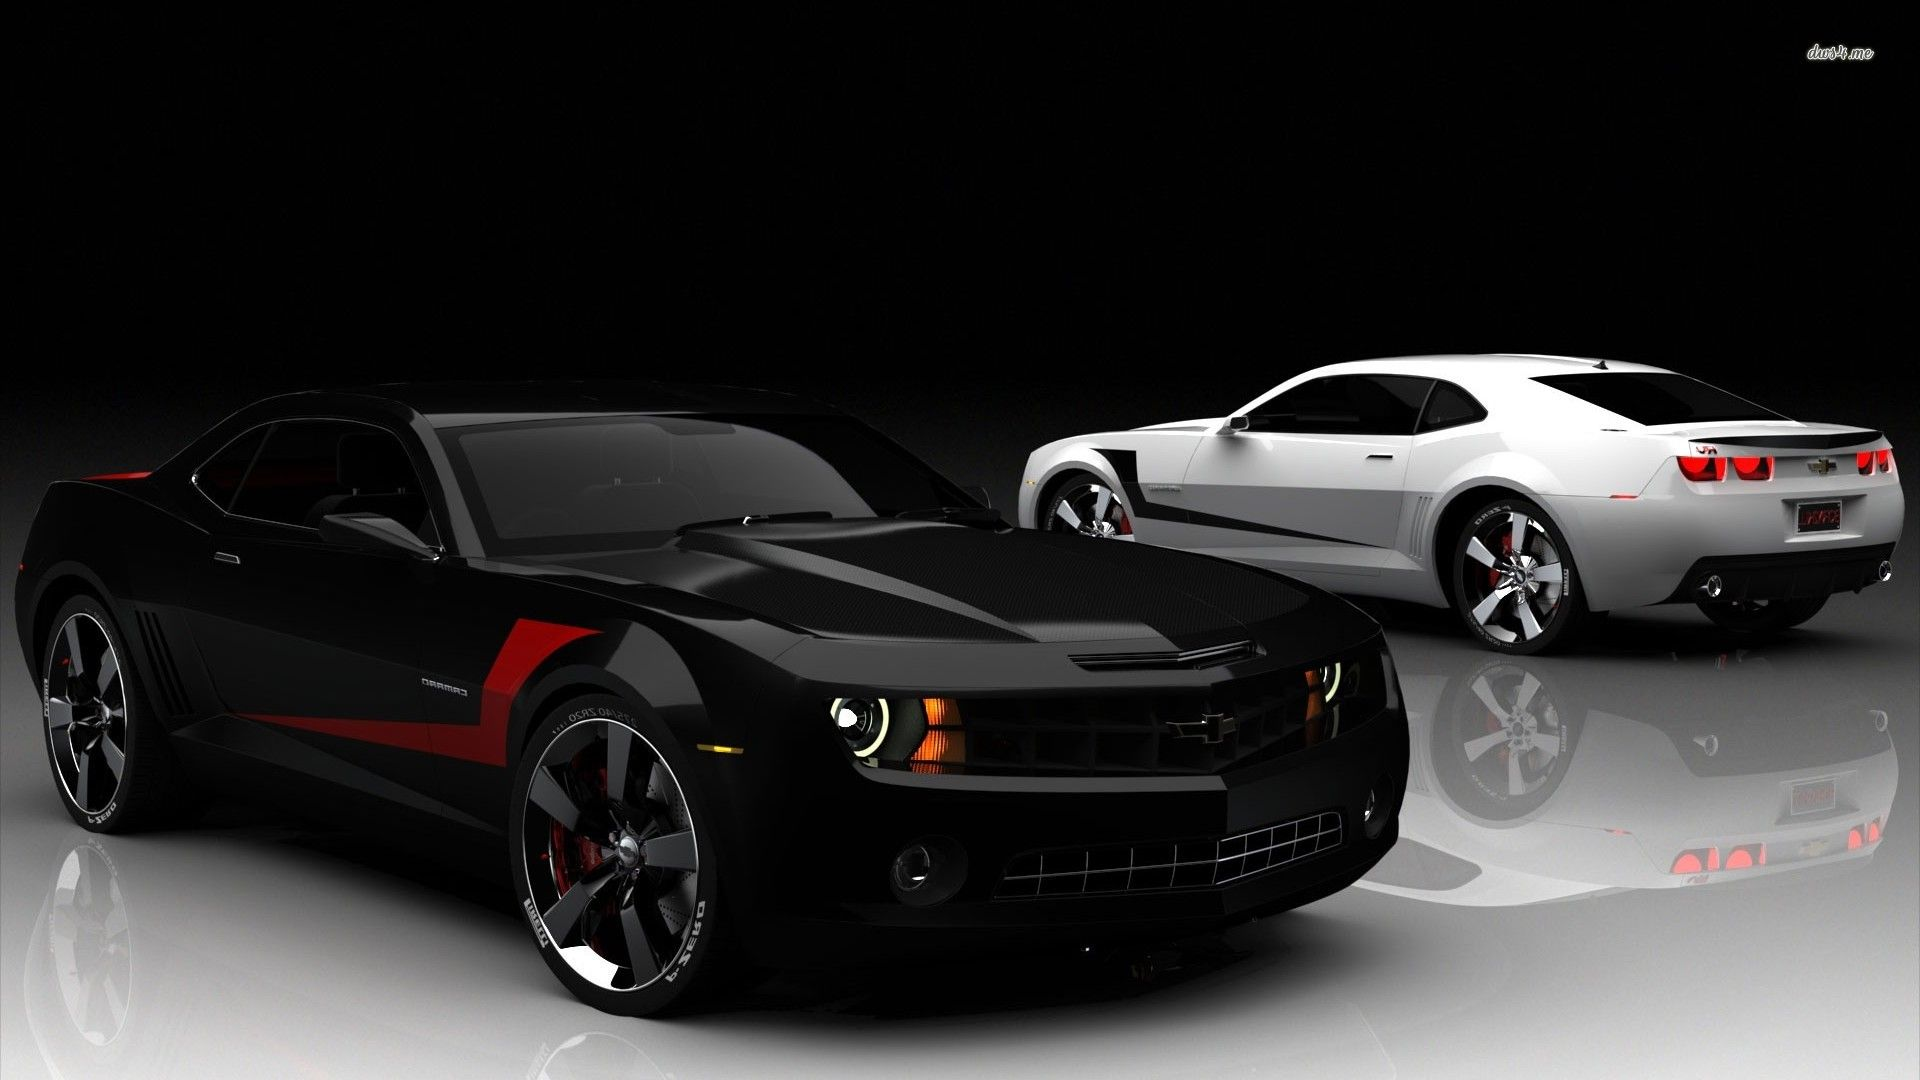 Black And White Chevrolet Camaro Car Wallpaper With Images